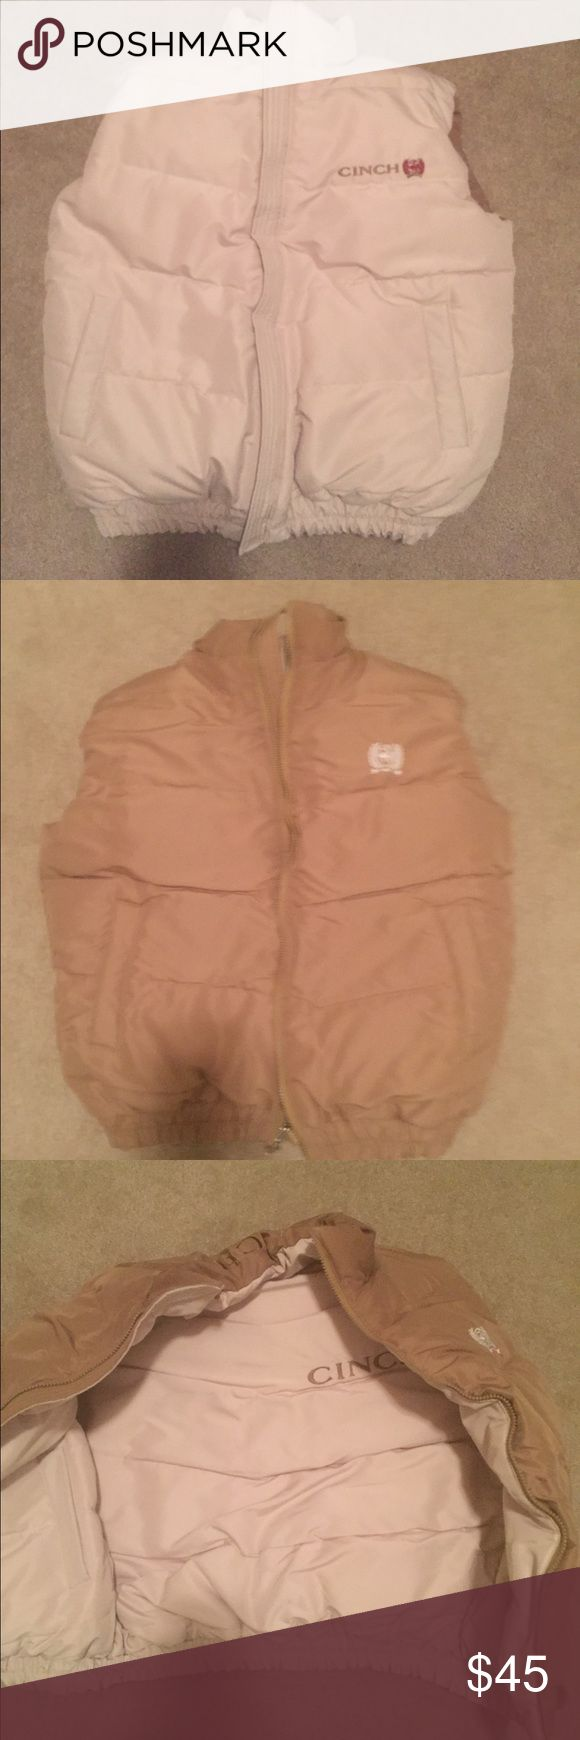 "Cinch Men's Down Cream Vest Small NWOT Cinch Men's Down Cream Vest Small NWOT, its reversible to tan! It measures 52"" pit to pit and 26"" for the length! This just never fit my hubby and it's been in the closet ever since! Cinch Jackets & Coats Vests"